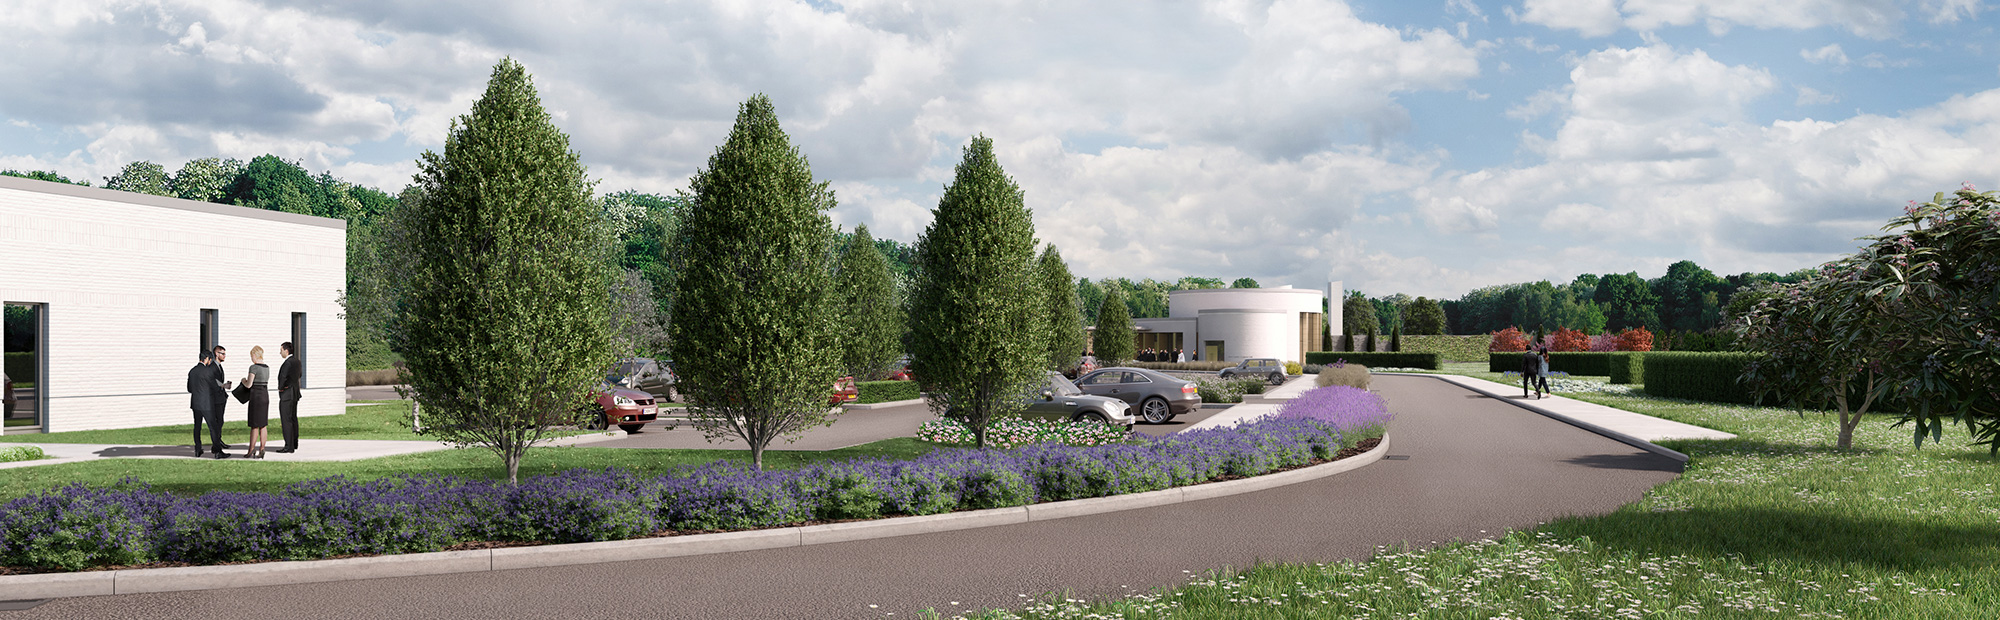 Huntingdon Crematorium Design and Development